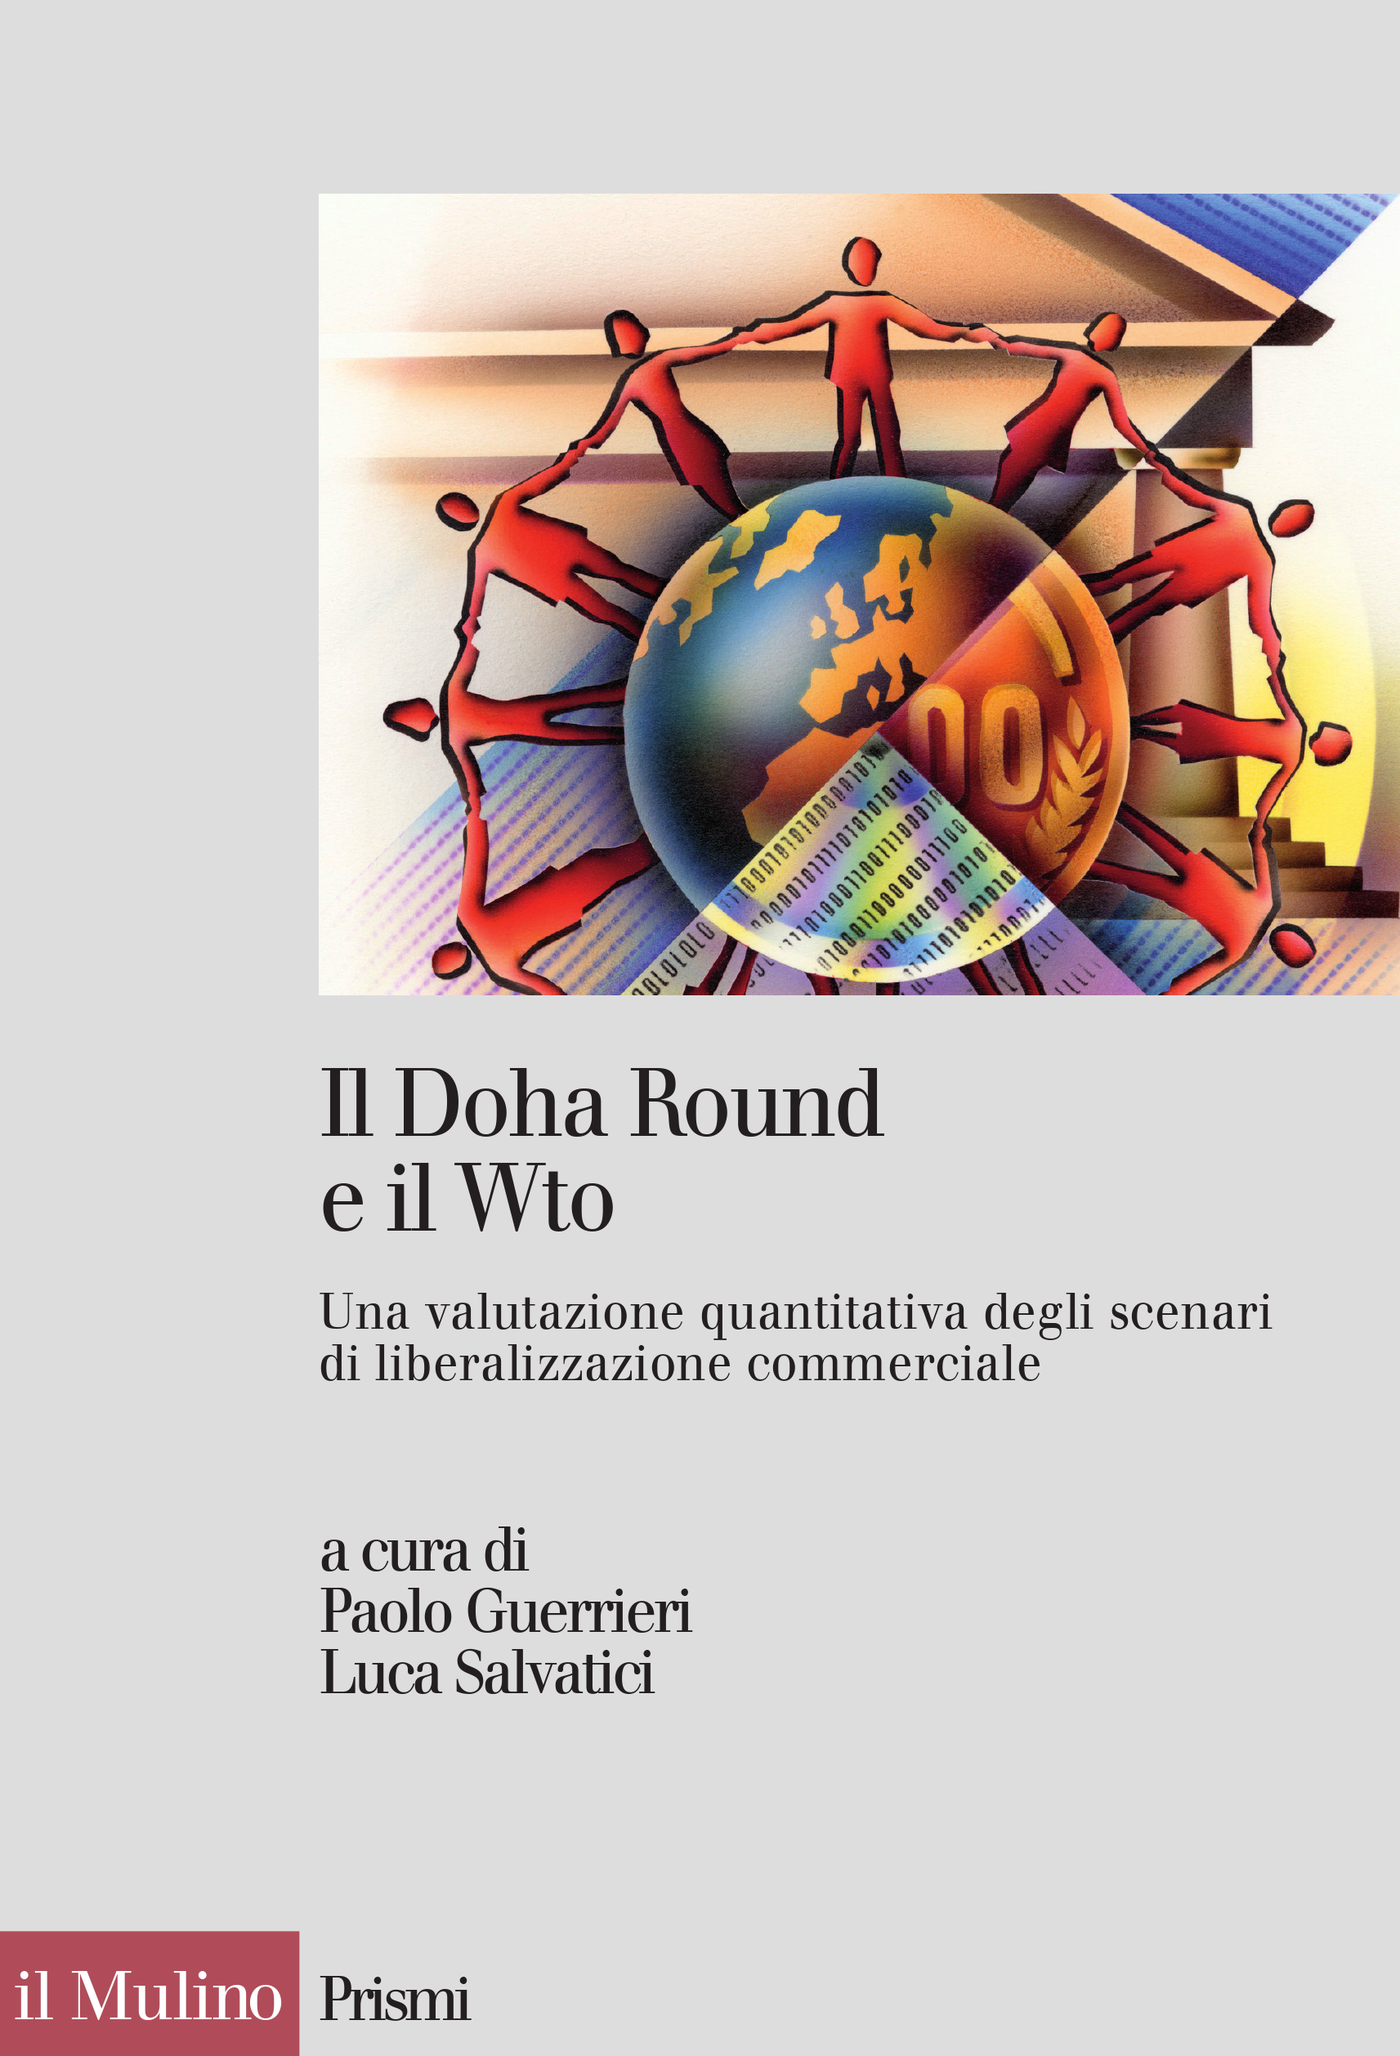 an analysis of the doha round with the world trade organization